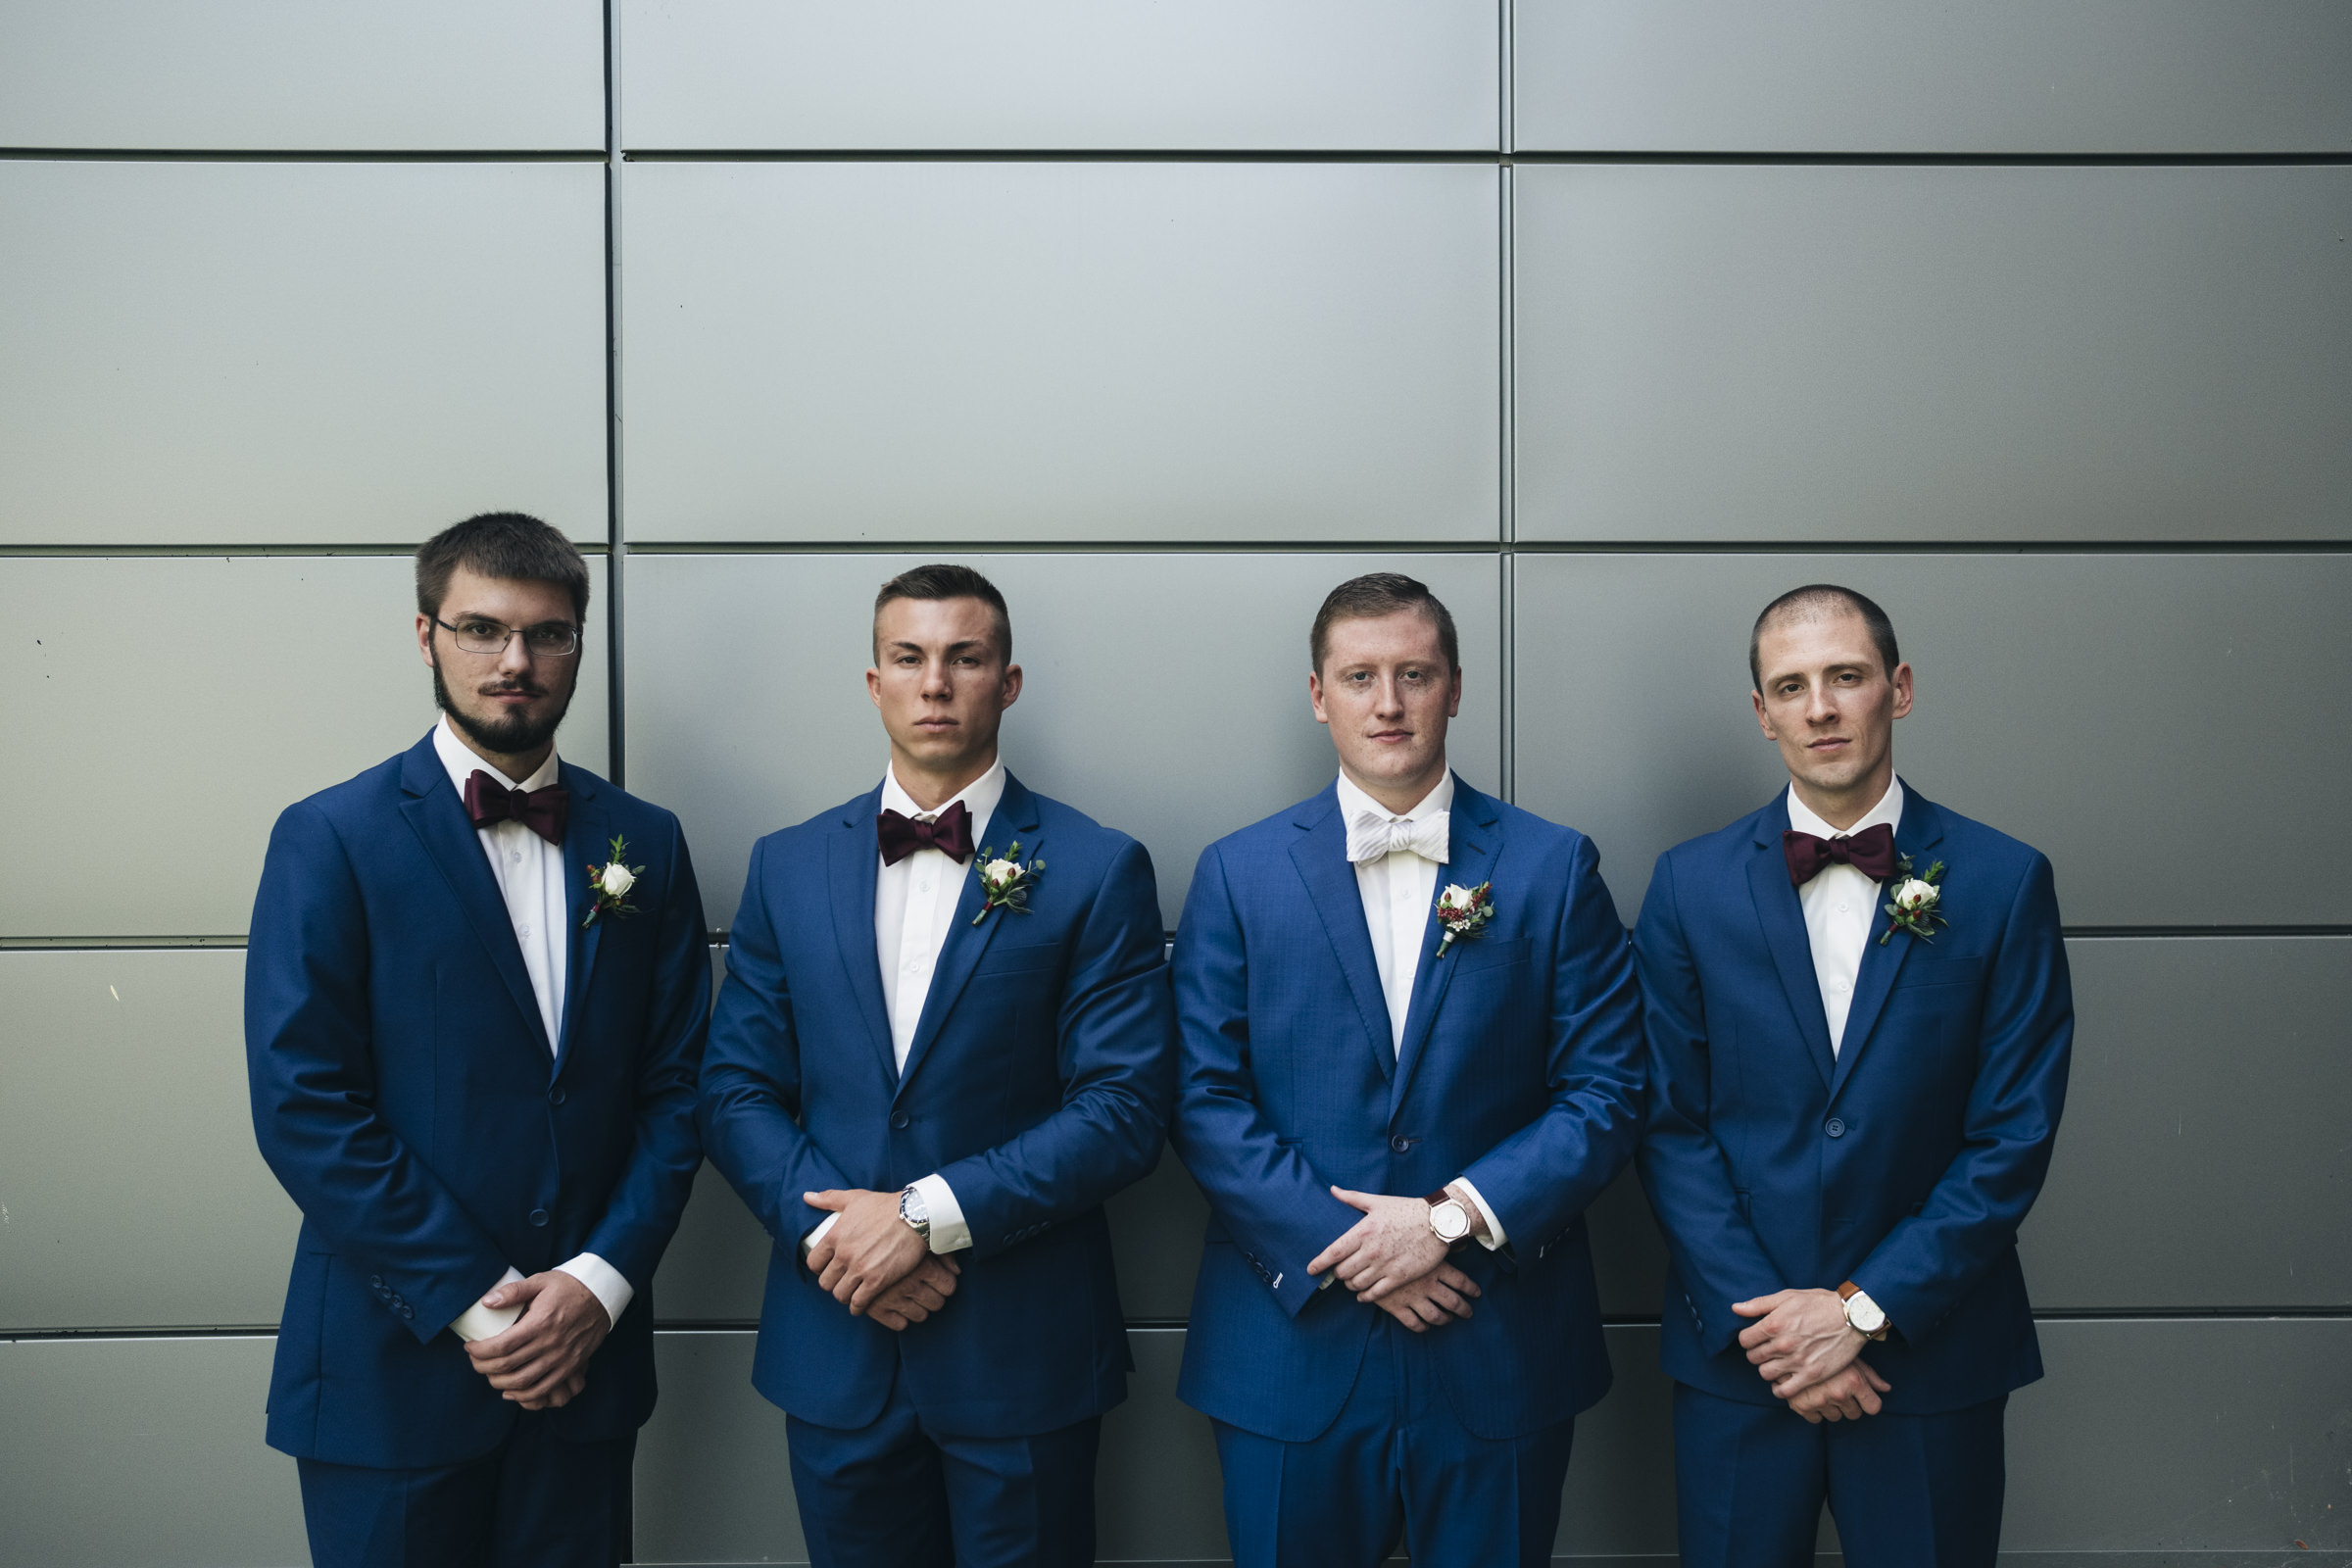 The groomsmen stand with the groom on Bowling Green State University's campus before his wedding ceremony